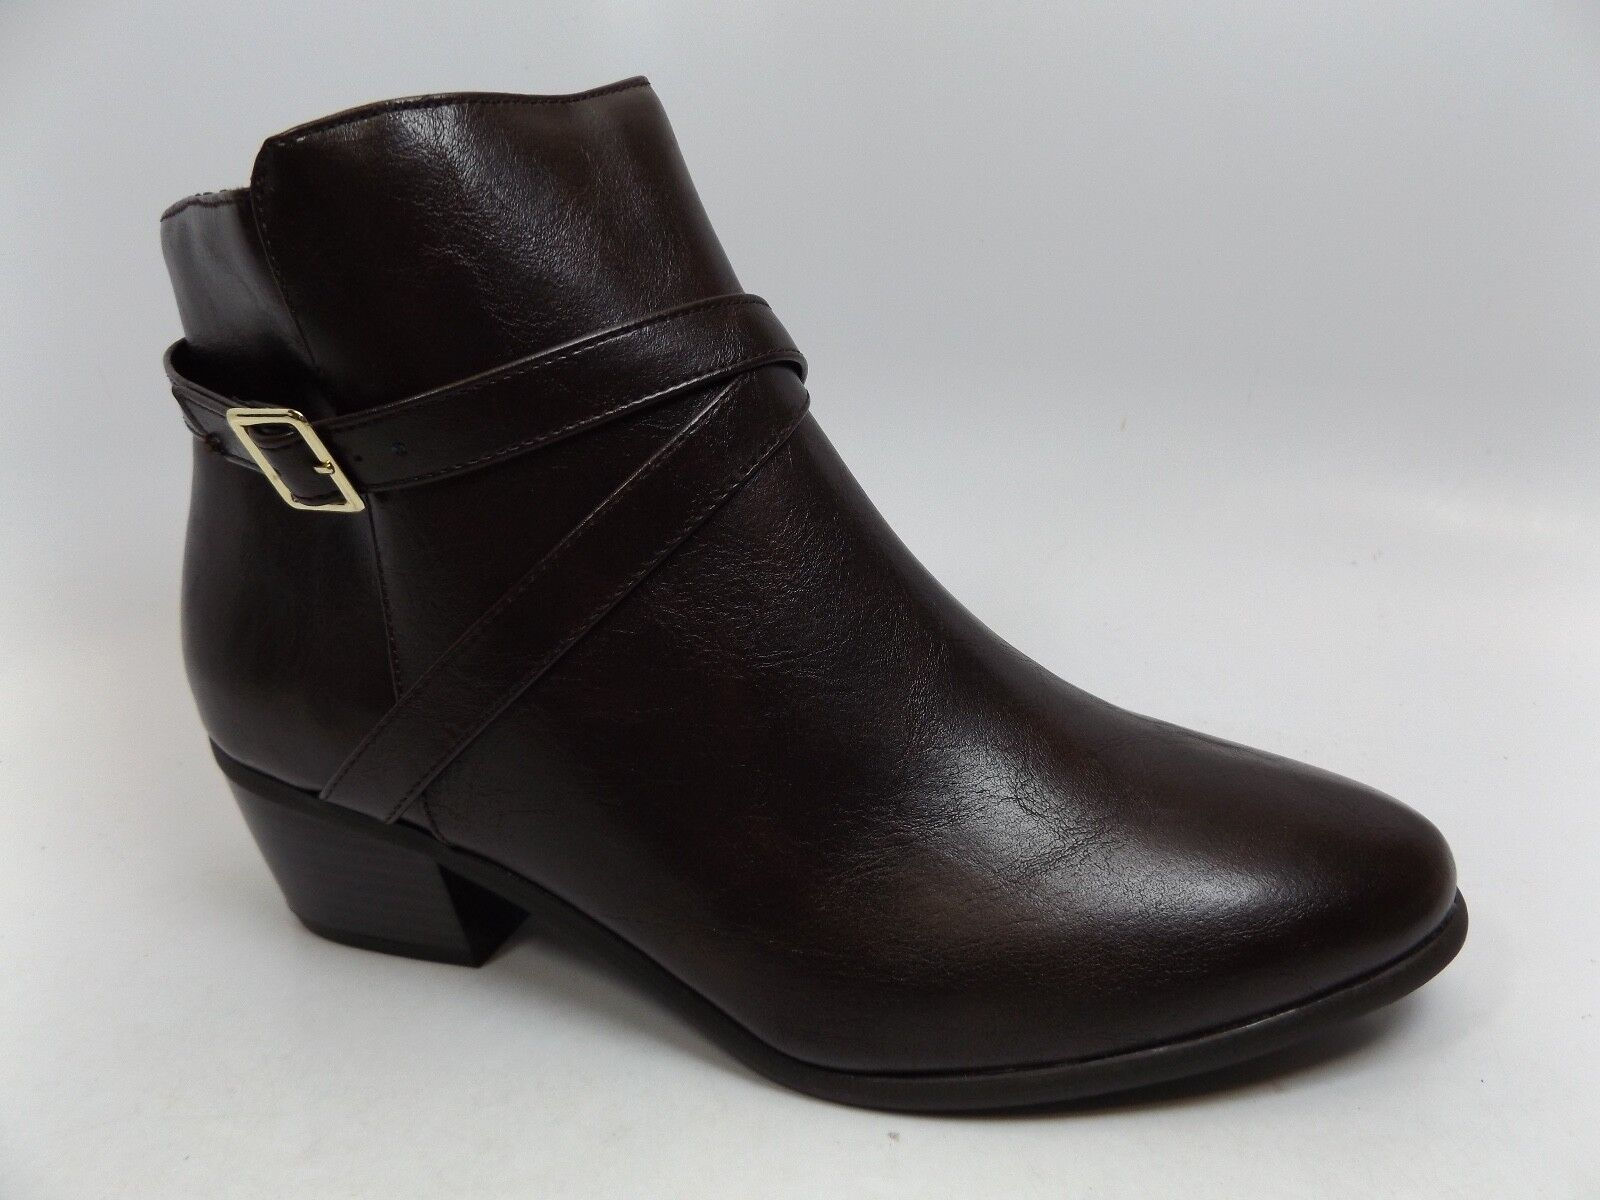 Valerie Stevens Haliday Ankle Boots-Women's SZ 10.0 M DK Brown NEW DISPLAY D8746